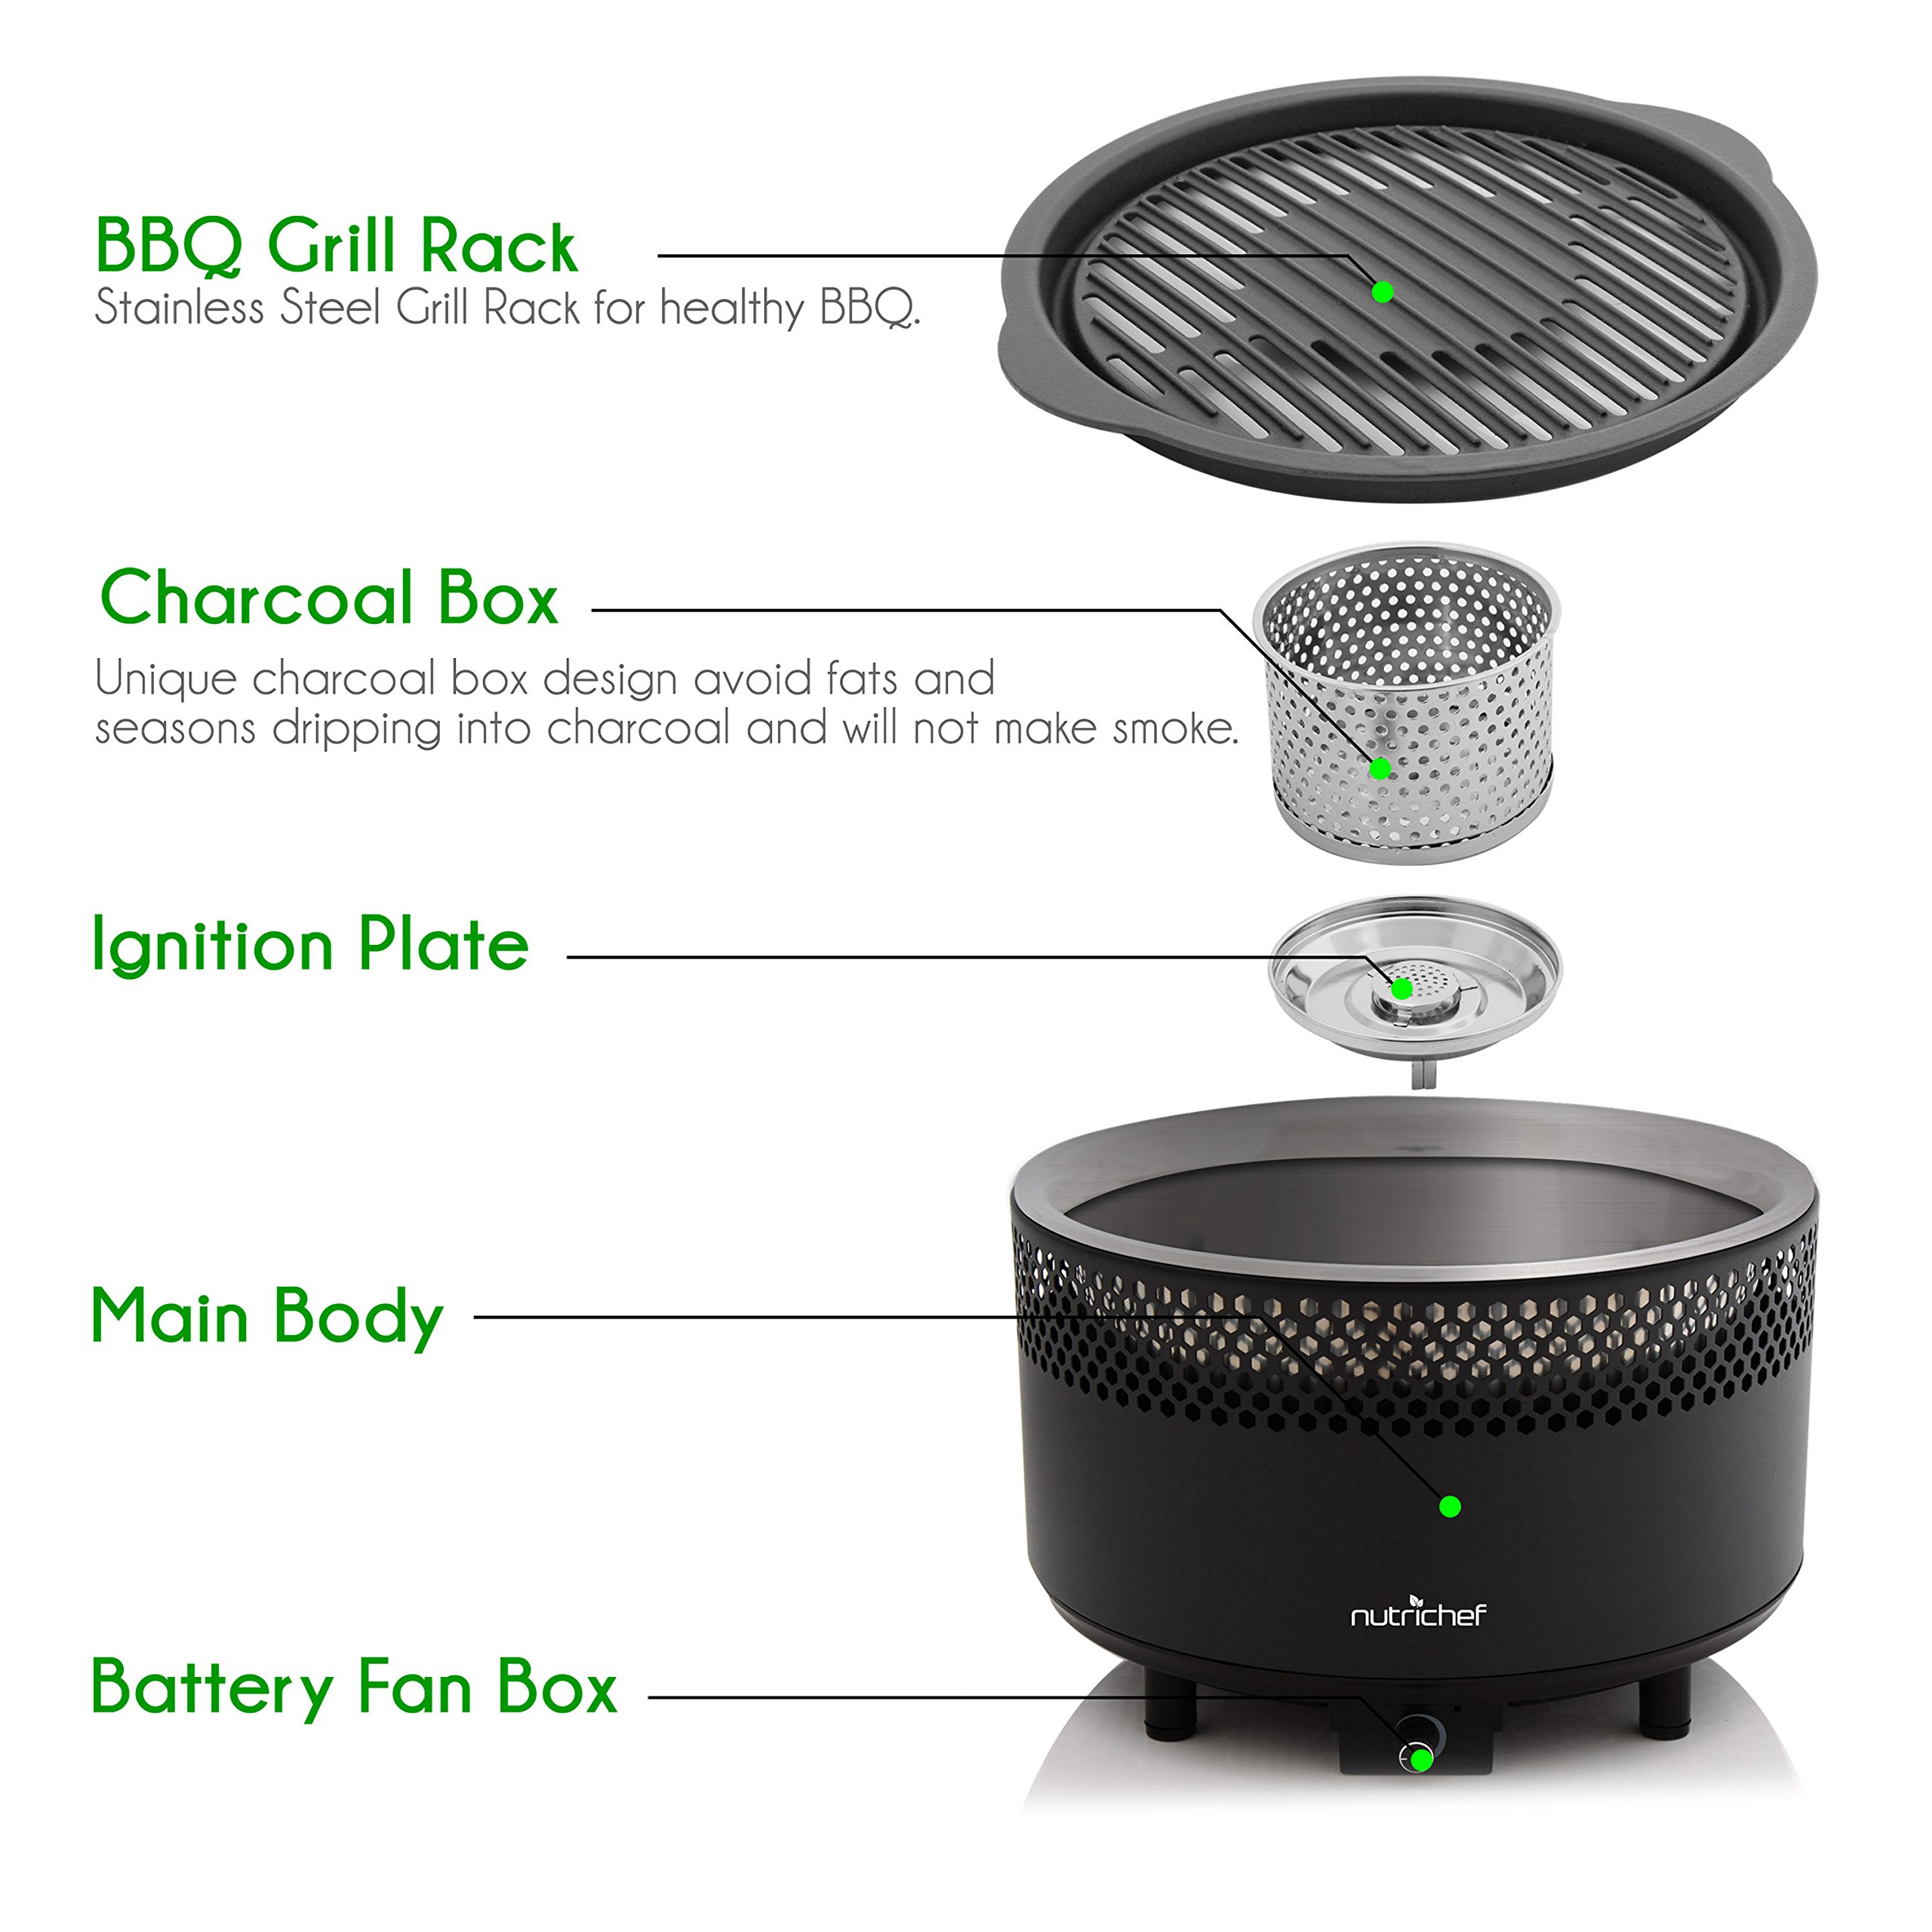 NutriChef Upgraded Charcoal BBQ Grill - Smokeless Portable Outdoor Stainless Steel Compact Easy Cleaning Heavy Duty - Battery Powered W/ Grilling Rack Coal Basket Ignition Tray & Box Set - PKGRCH41 by NutriChef (Image #2)